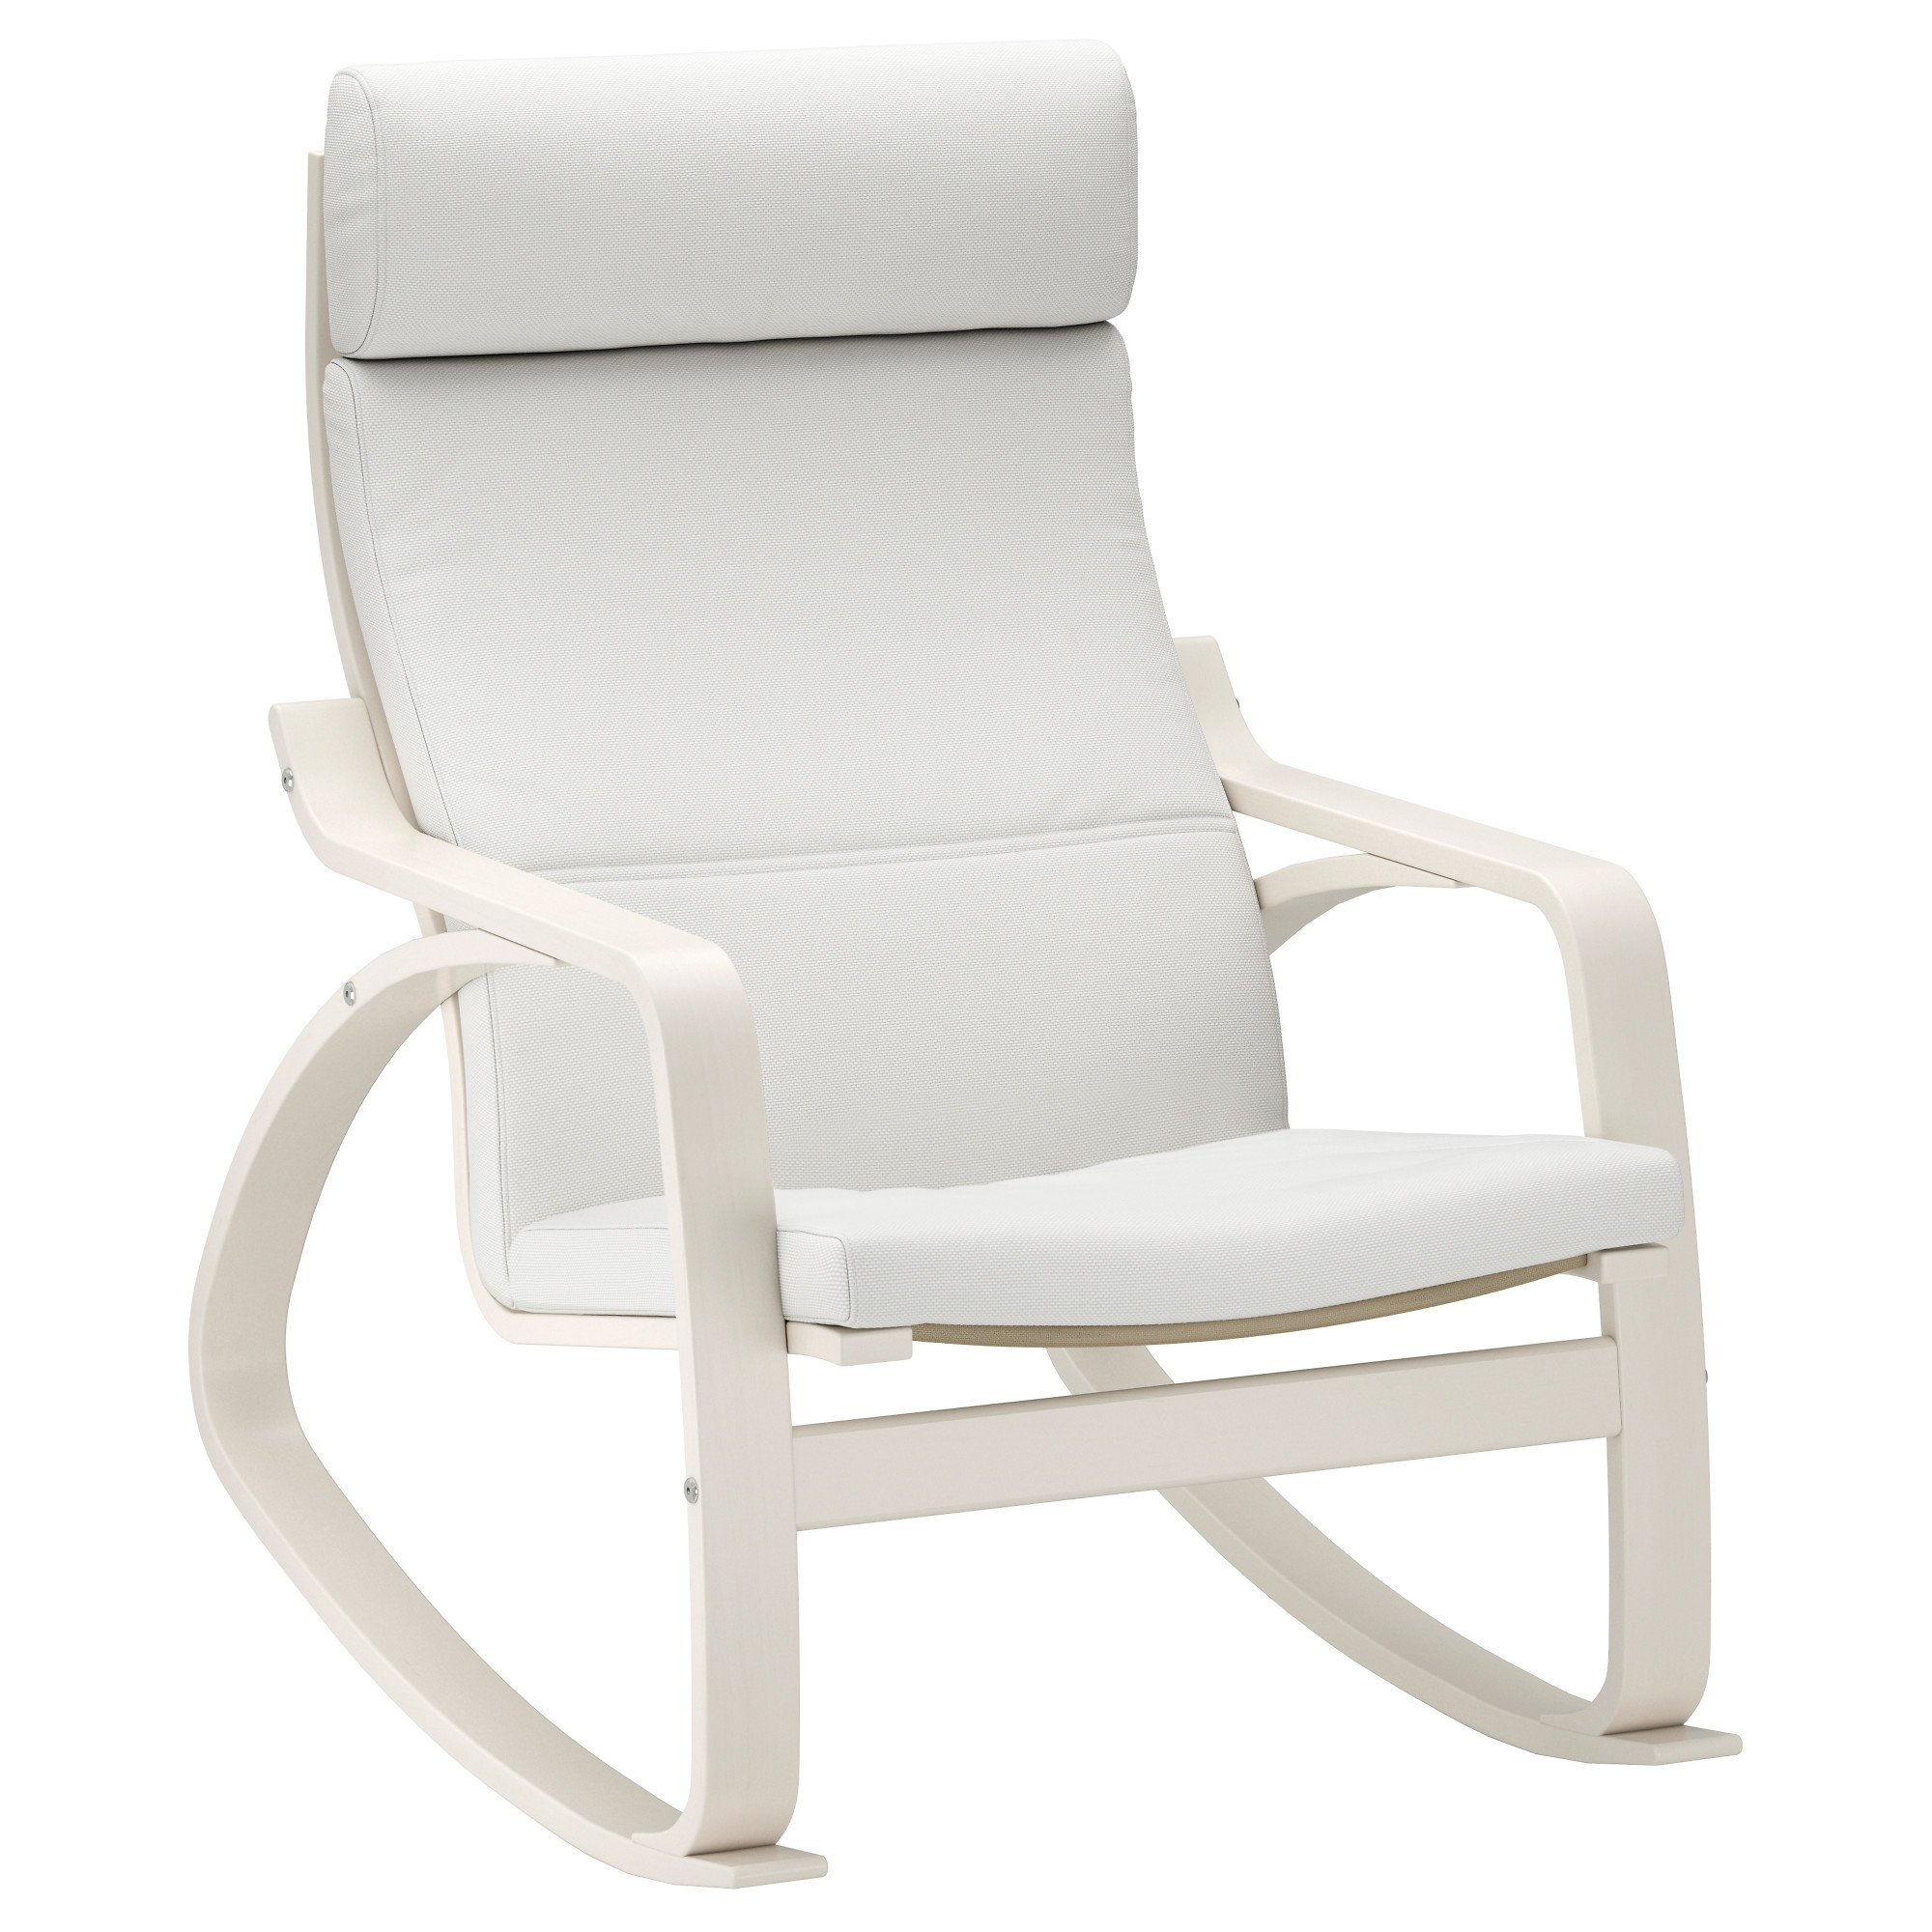 Rocking Chair Parts Modern Glider Rocker White Rocking Chair With Most Up To Date Rocking Chairs At Ikea (View 8 of 15)